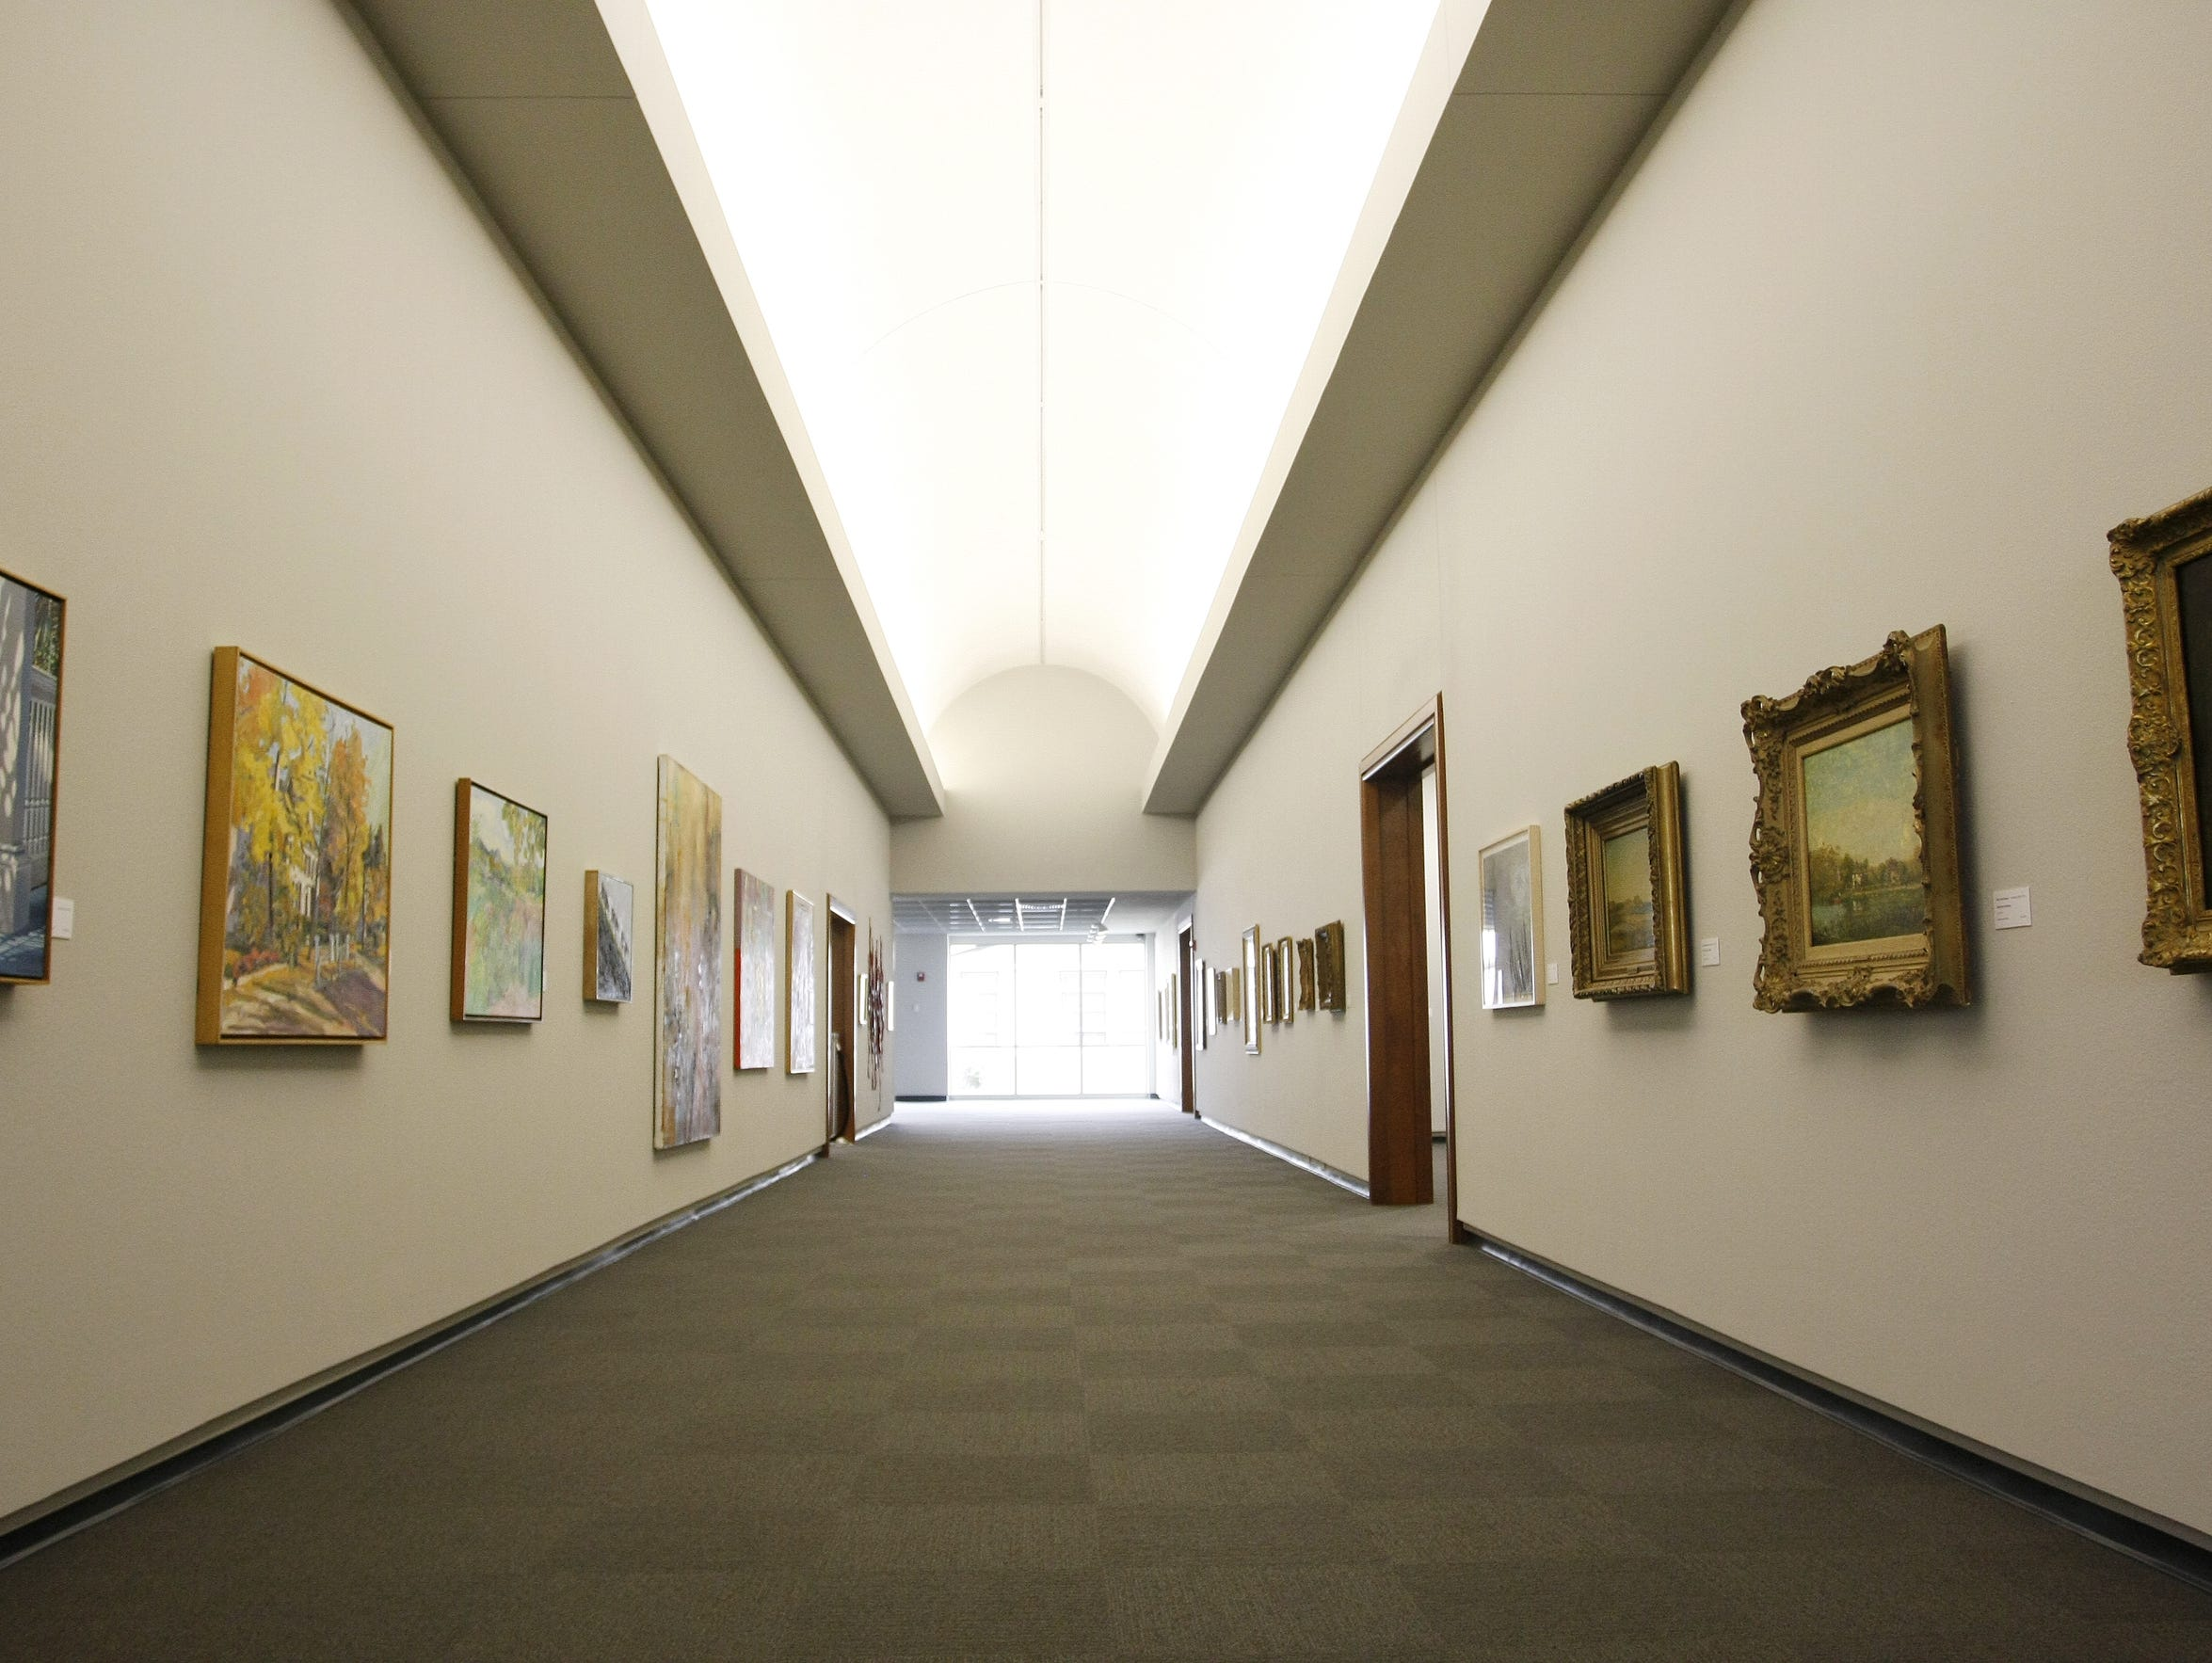 The Corridor Gallery in the 2008 addition to the Springfield